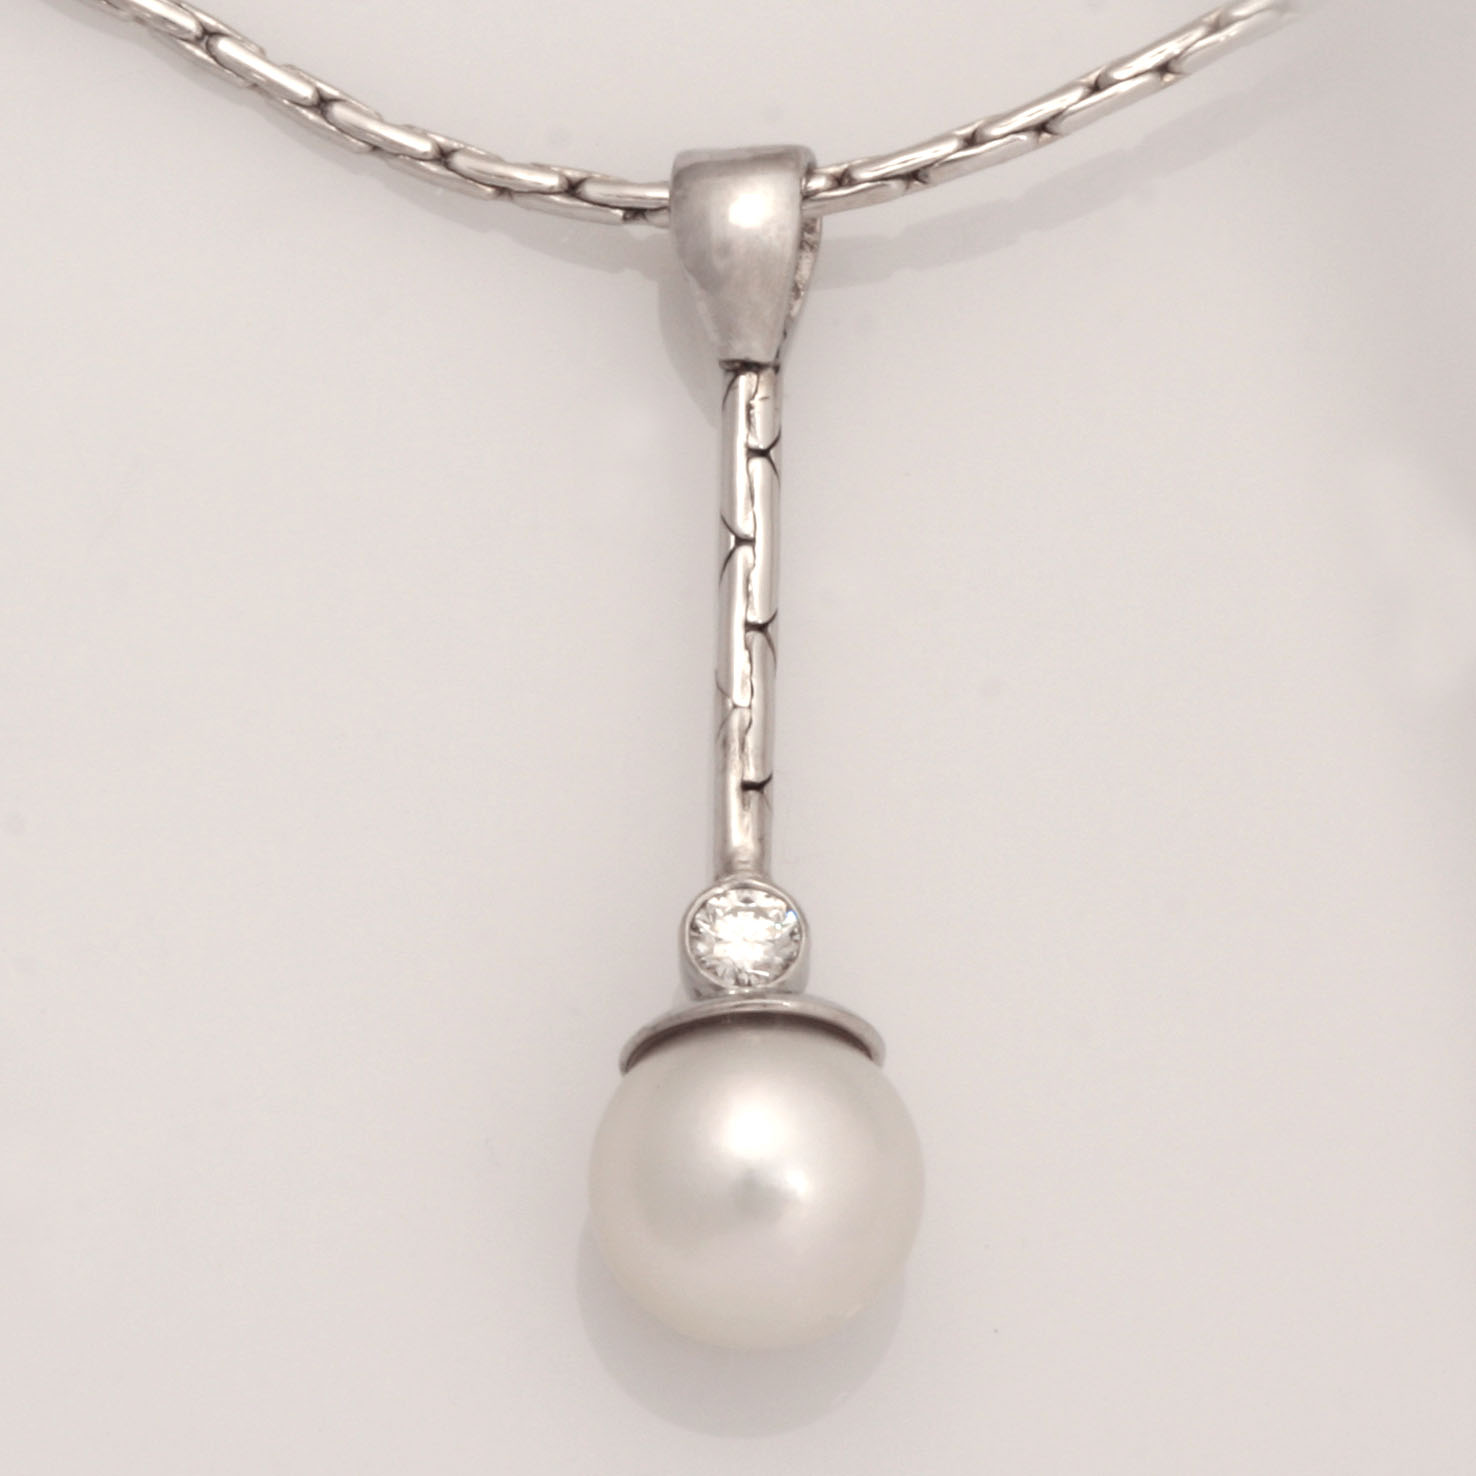 Handmade ladies 18ct white gold drop pendant featuring an Akoya pearl and diamond